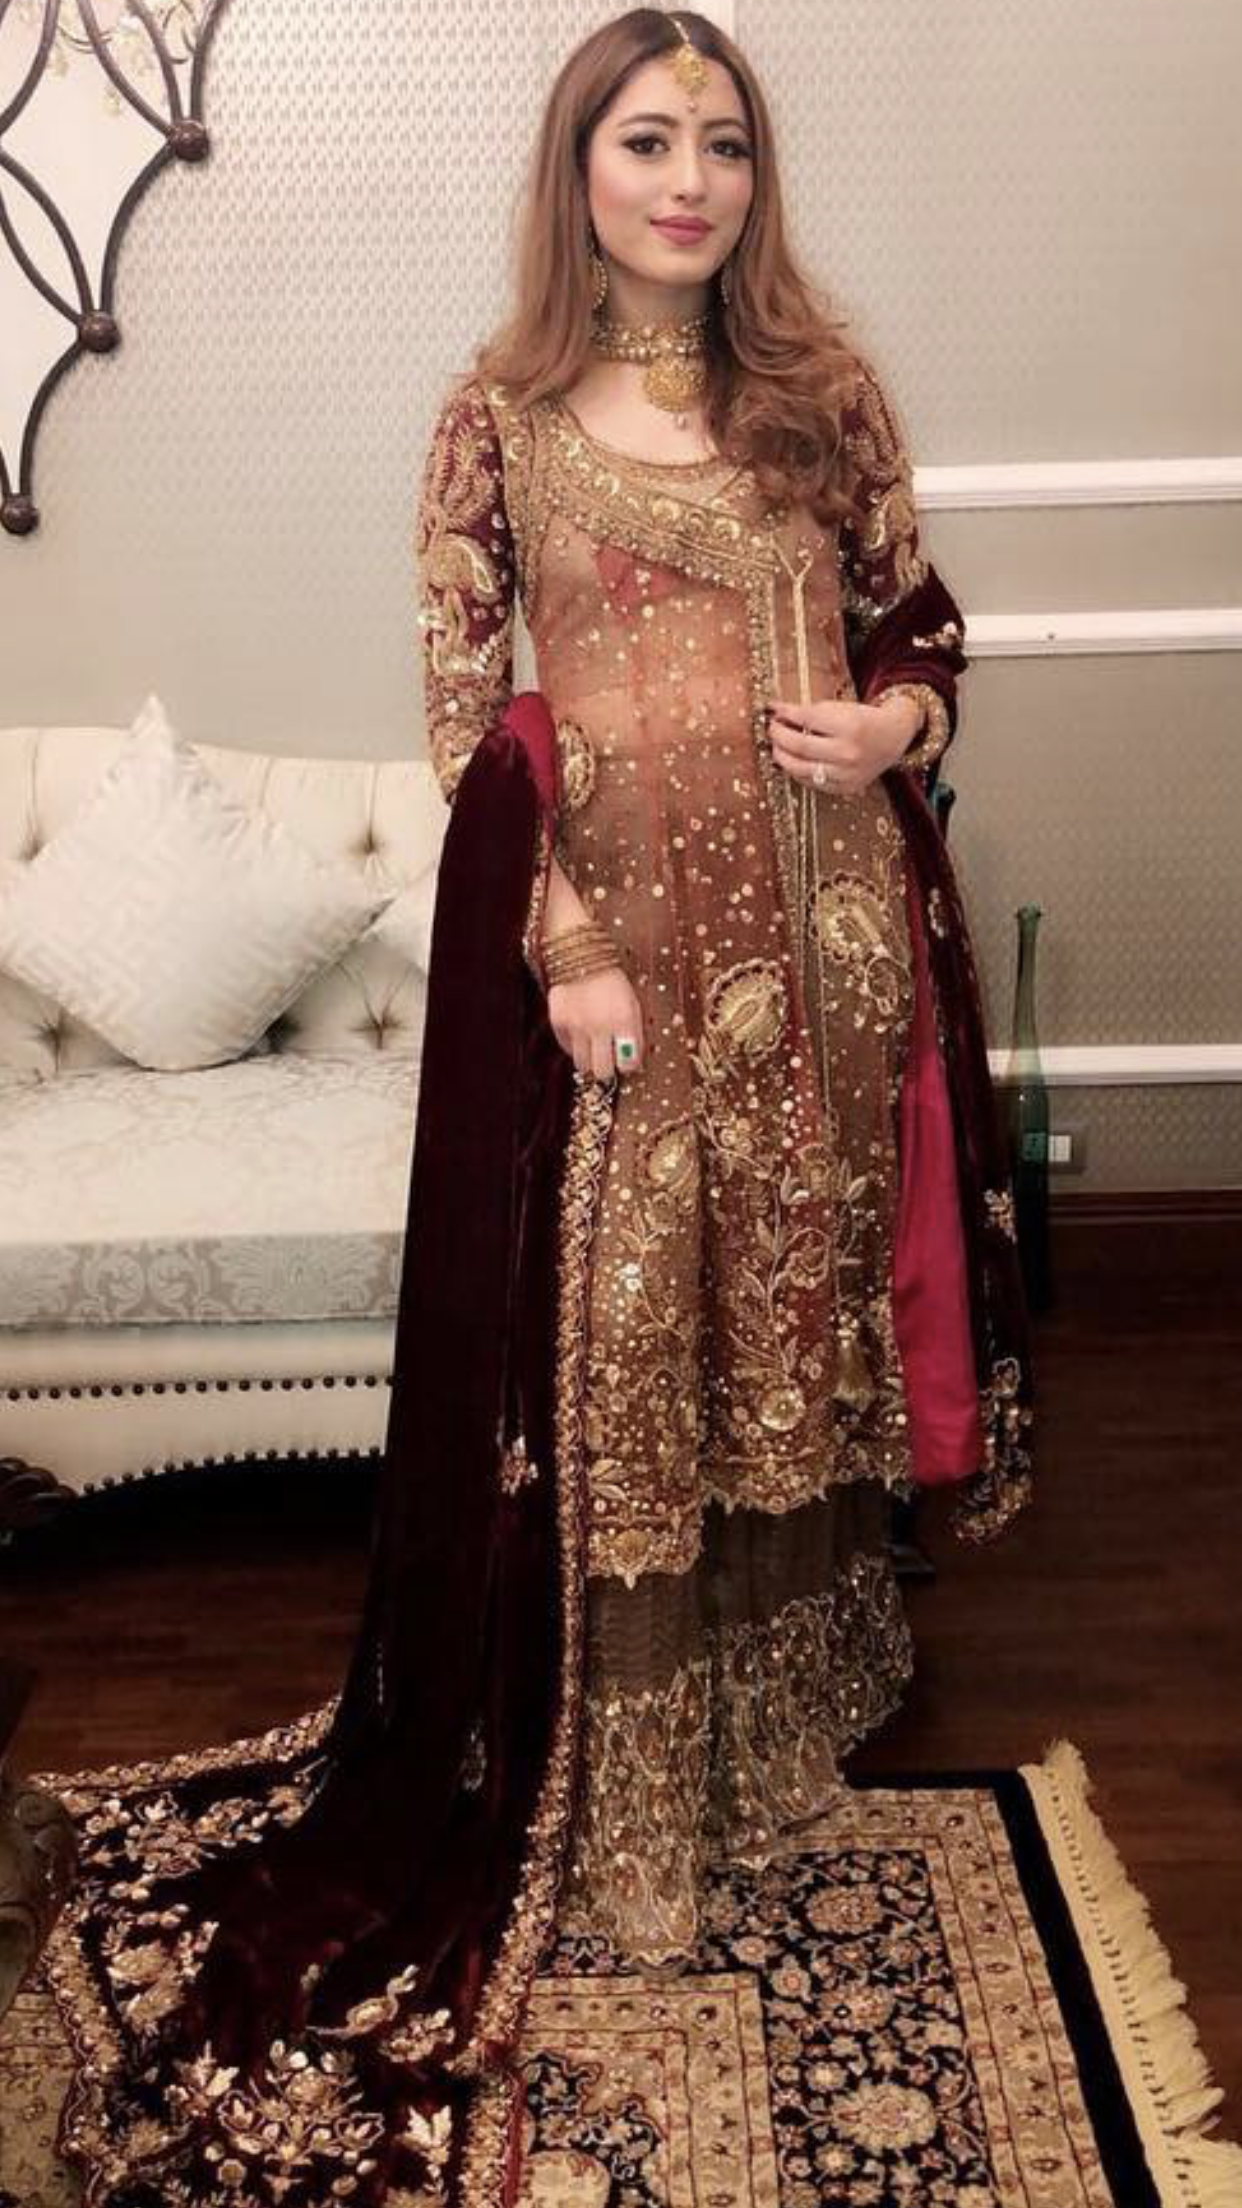 Brides Cousin Barat Outfit Casual Wedding Dress Pakistani Dresses Pakistani Bridal Dresses,Tea Length Wedding Dresses With Pockets